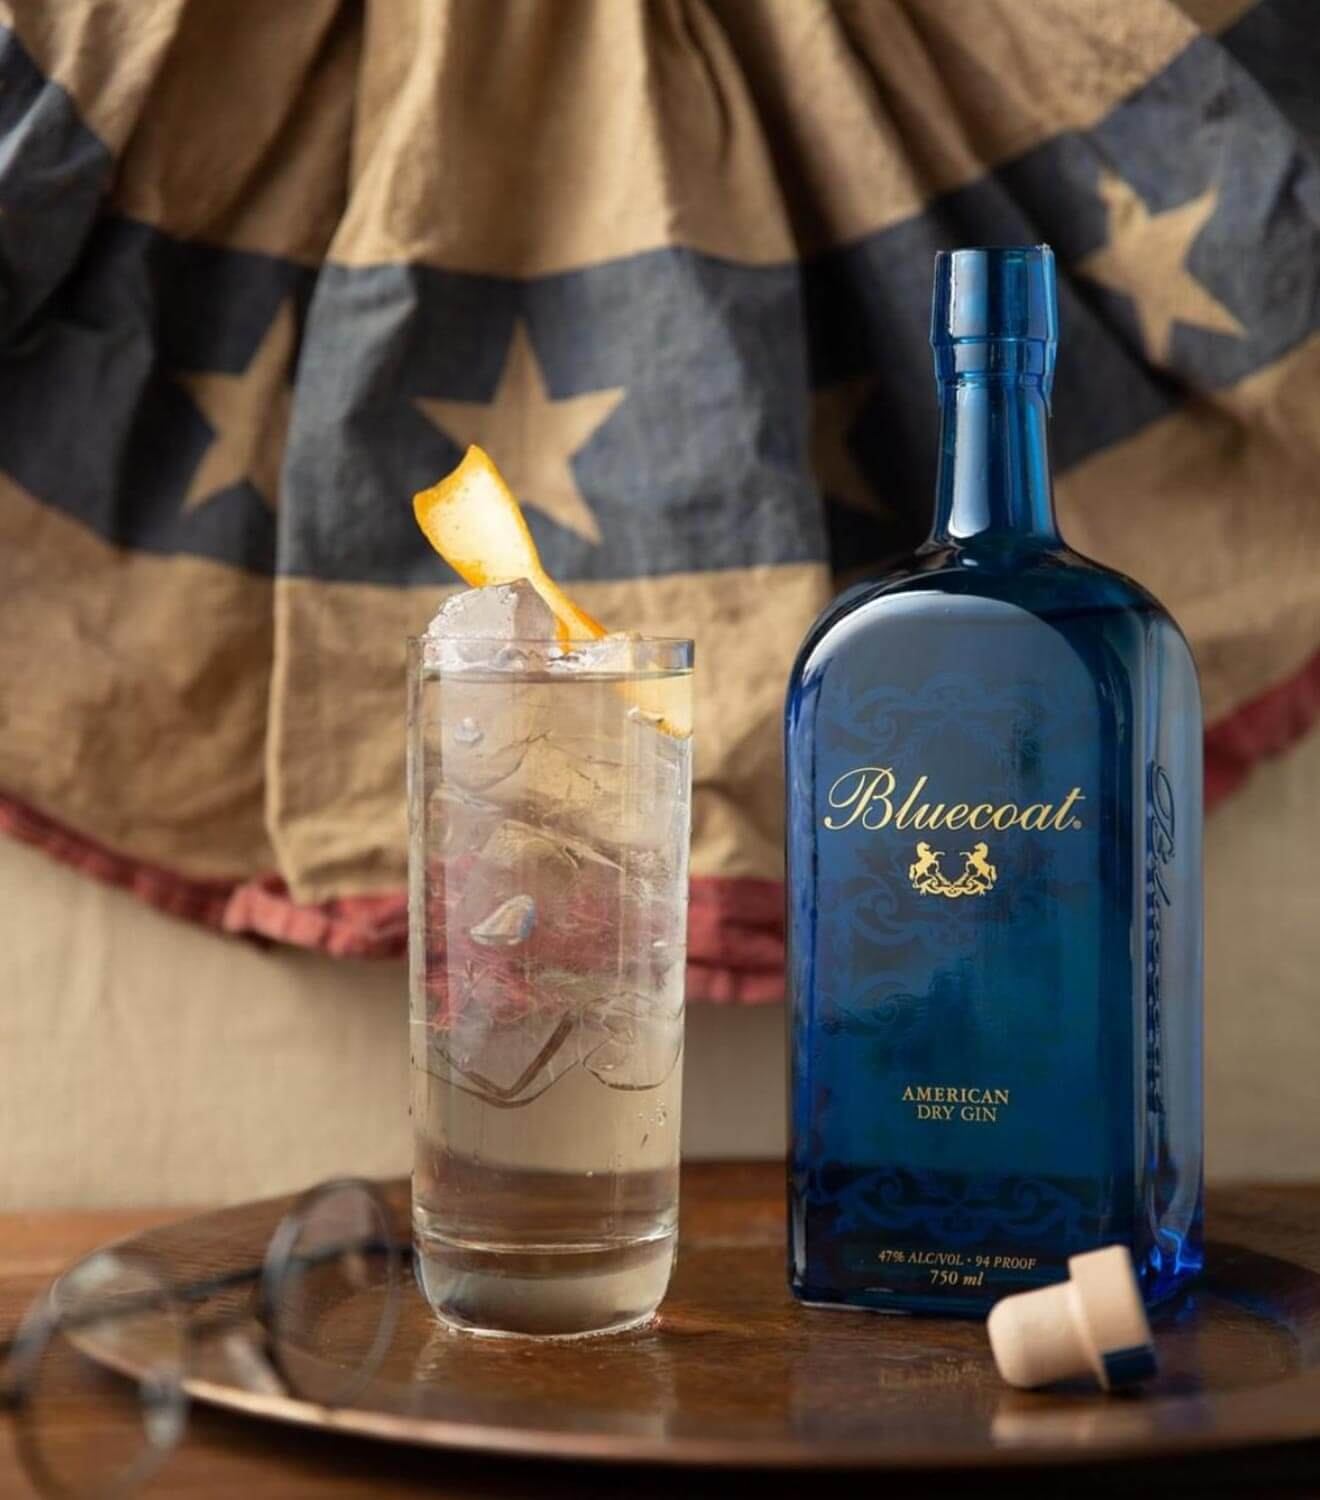 All-American GnT, cocktail and bottle with old american flag